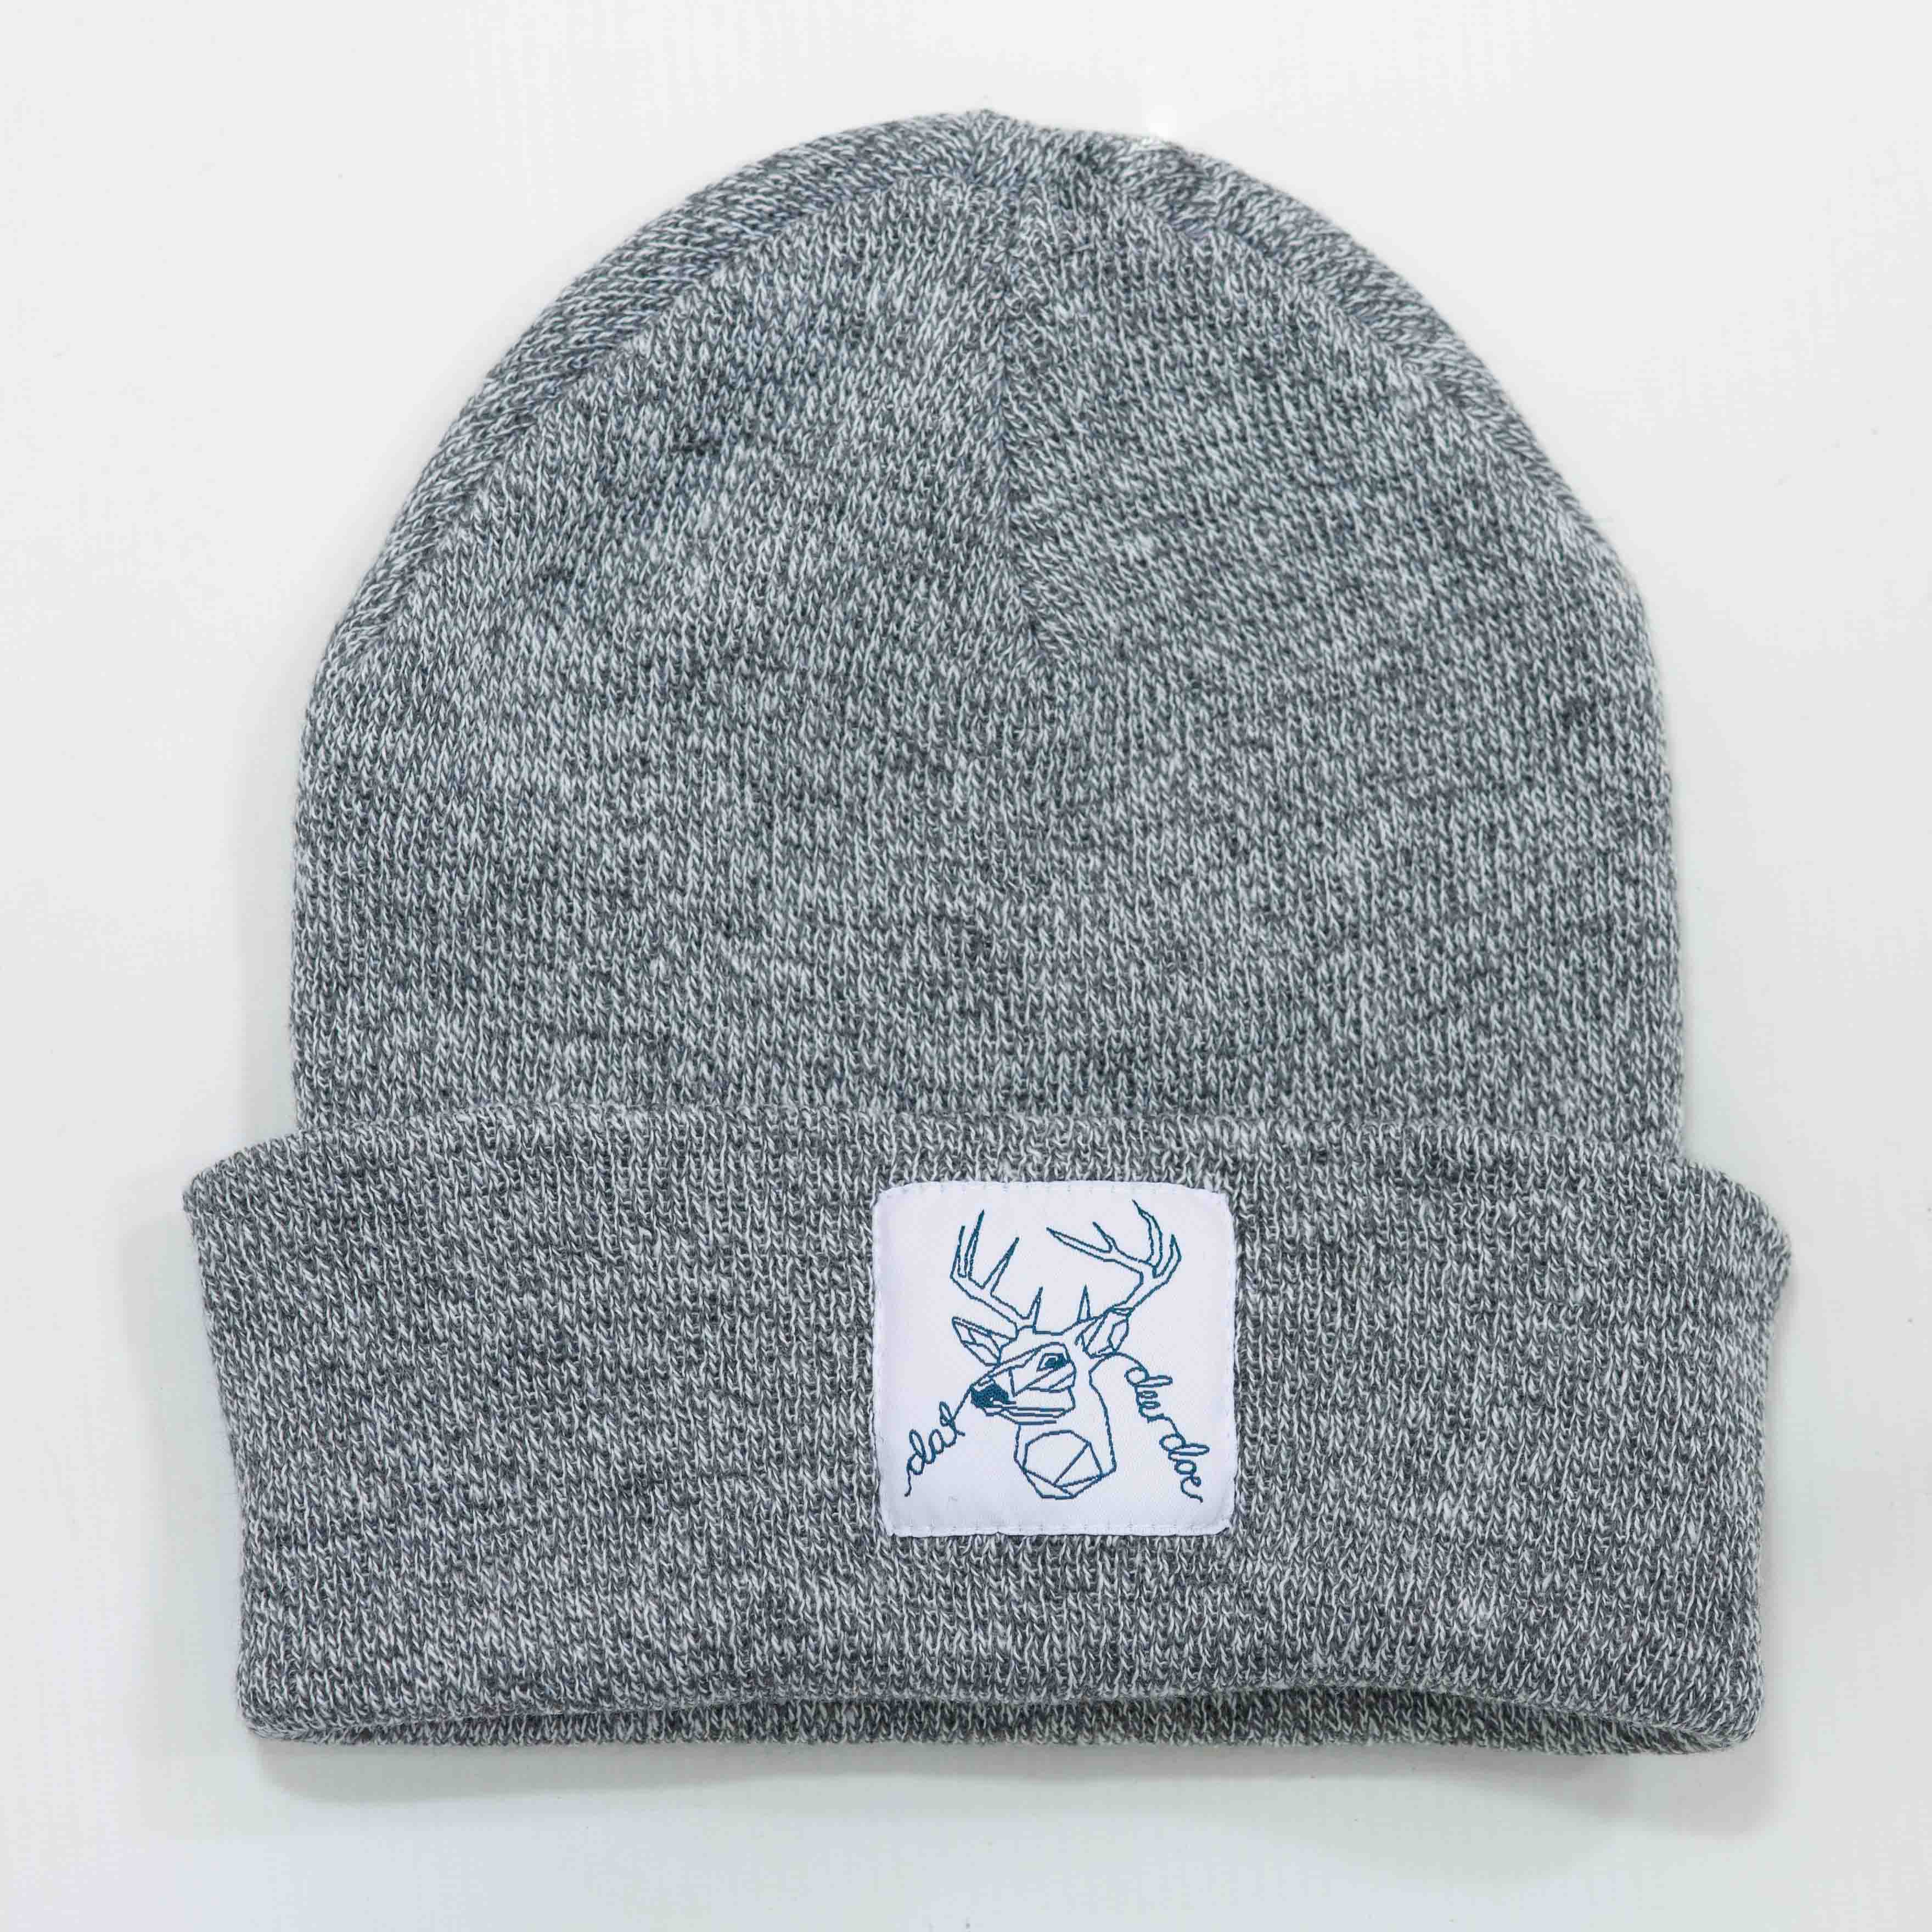 Dat Deer Doe - Light Grey Speckled Beanie